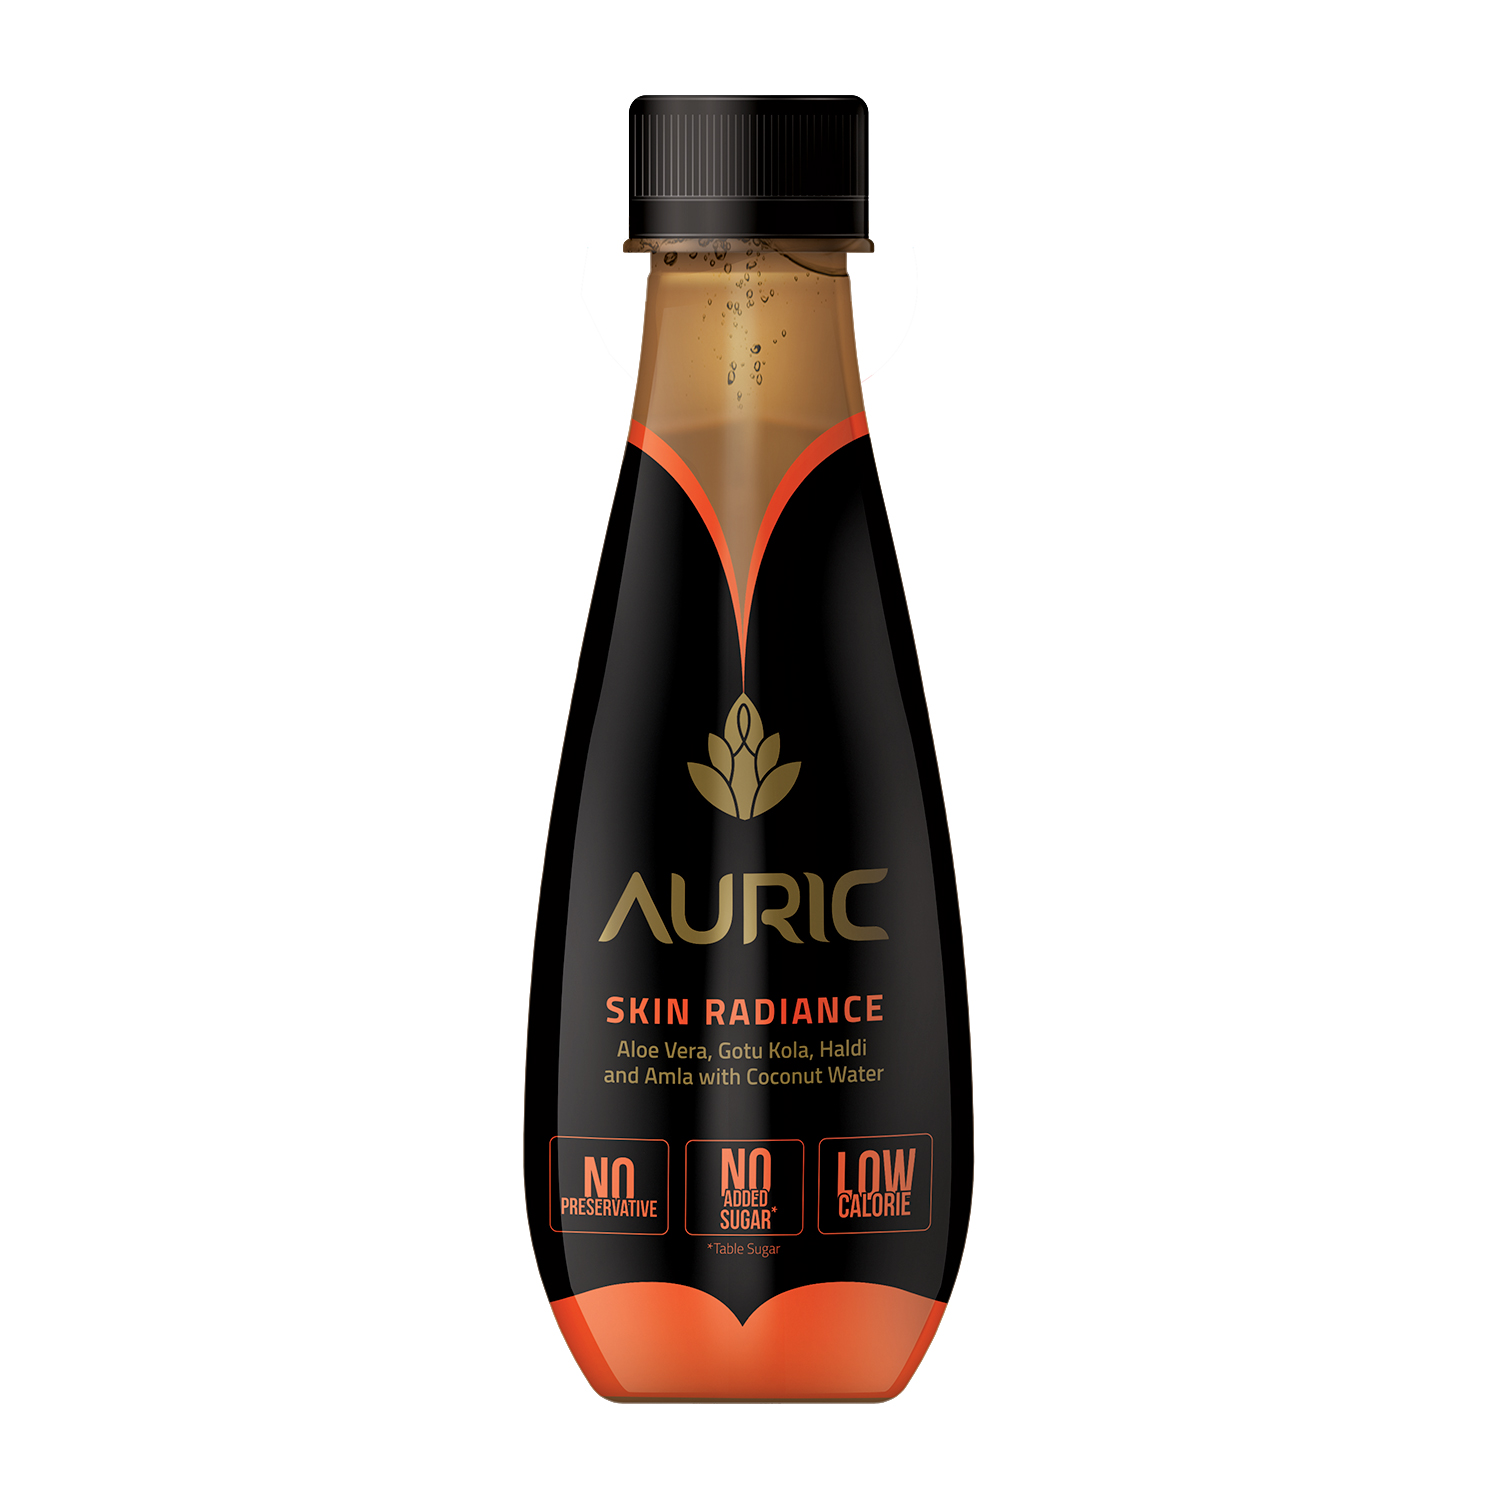 Auric Skin Radiance for Glowing Skin